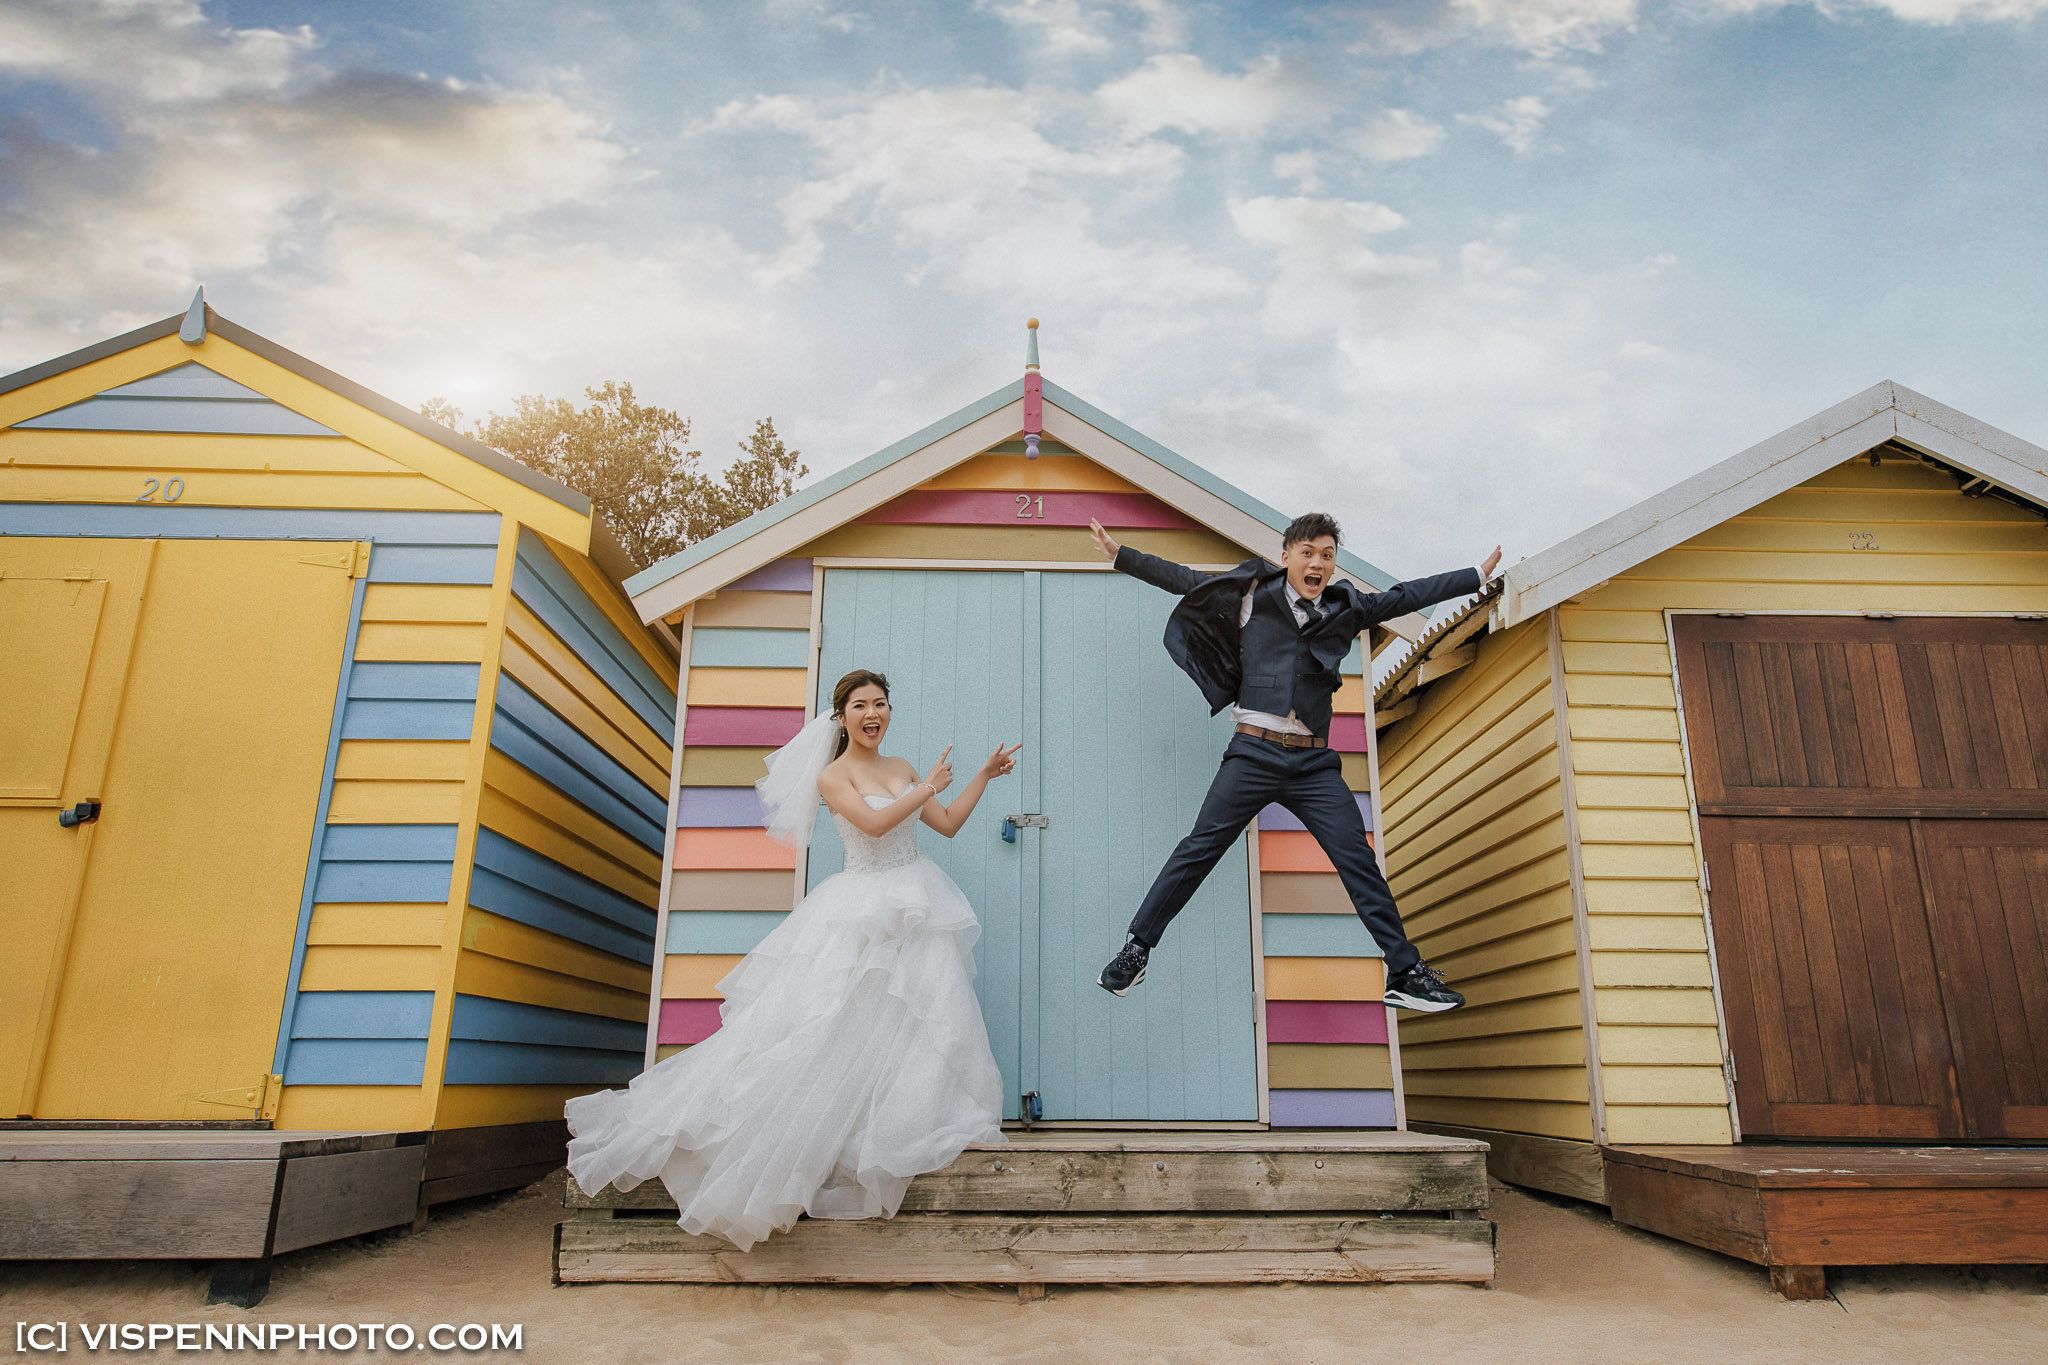 PRE WEDDING Photography Melbourne GiGi 7013 EOSR ZHPENN